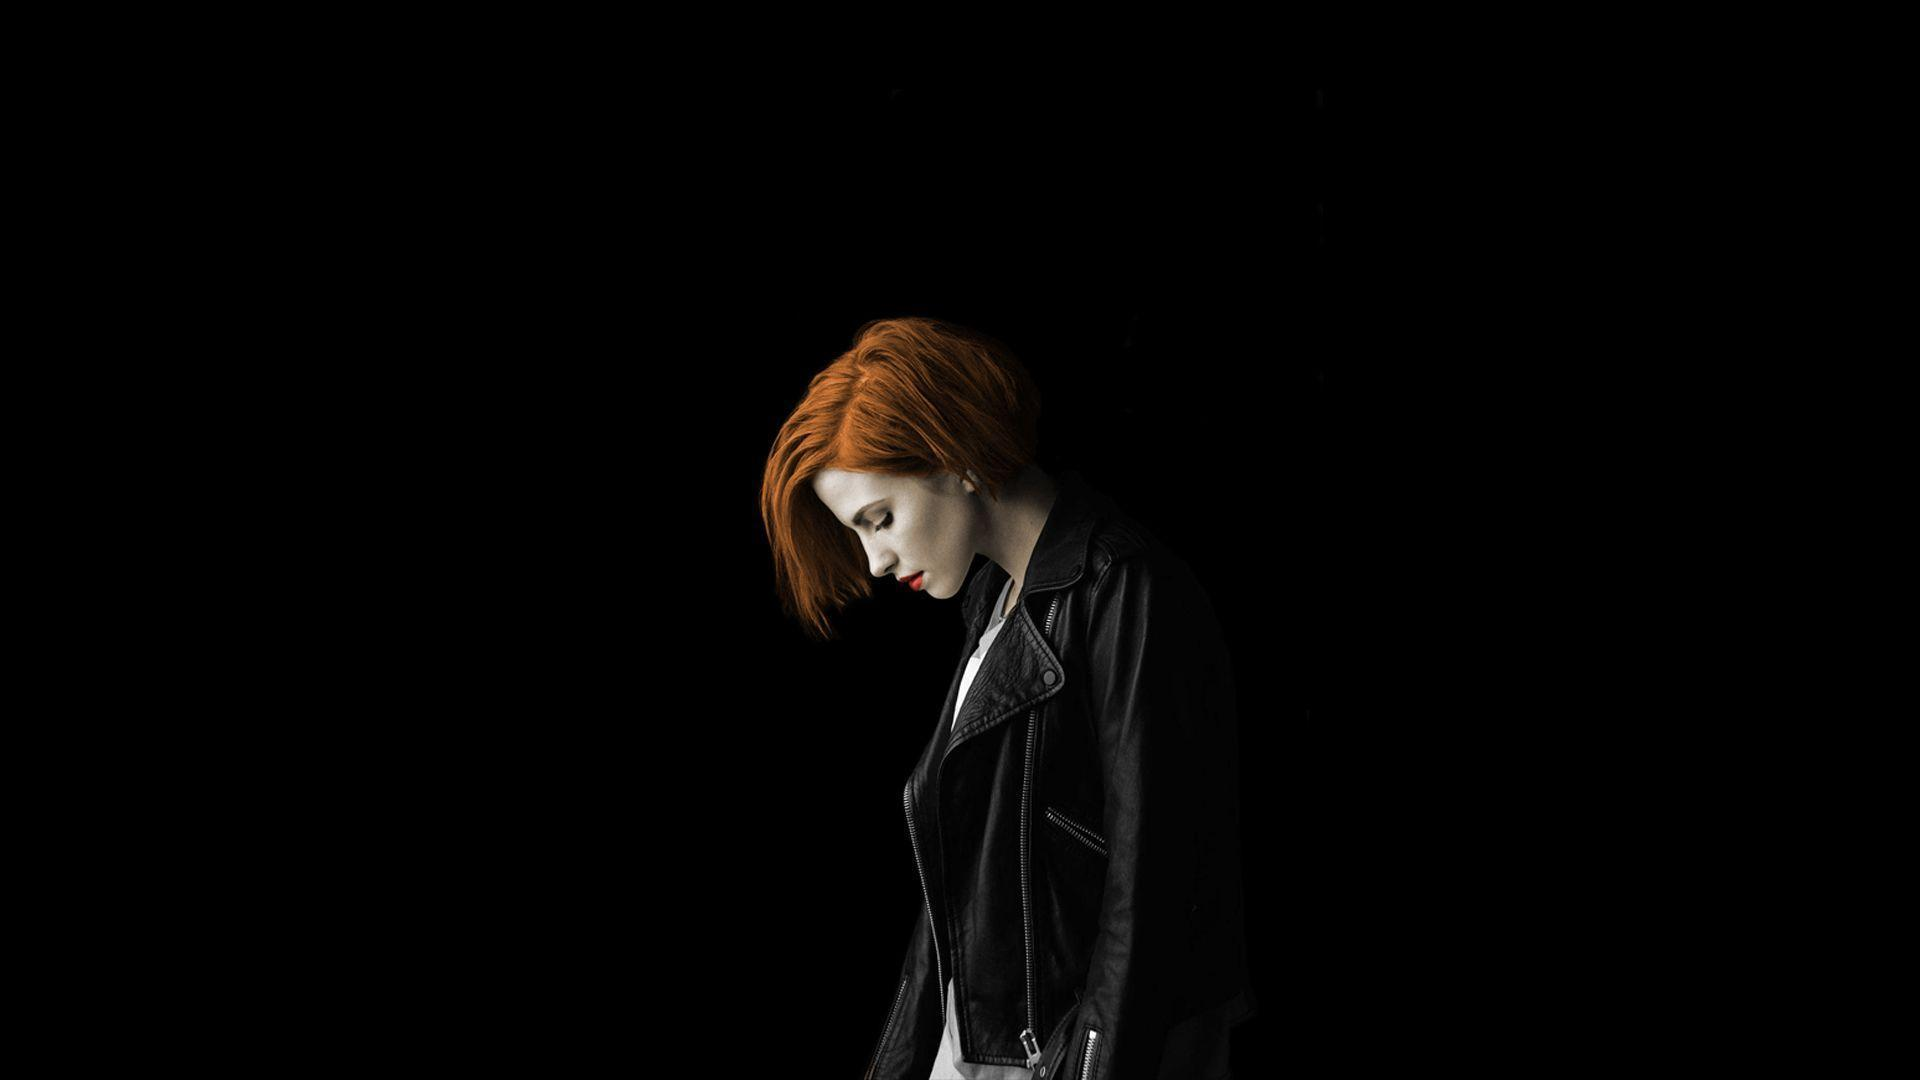 Download Hayley Williams Wallpapers 2016 [1920x1080] 73 Haley 1920x1080